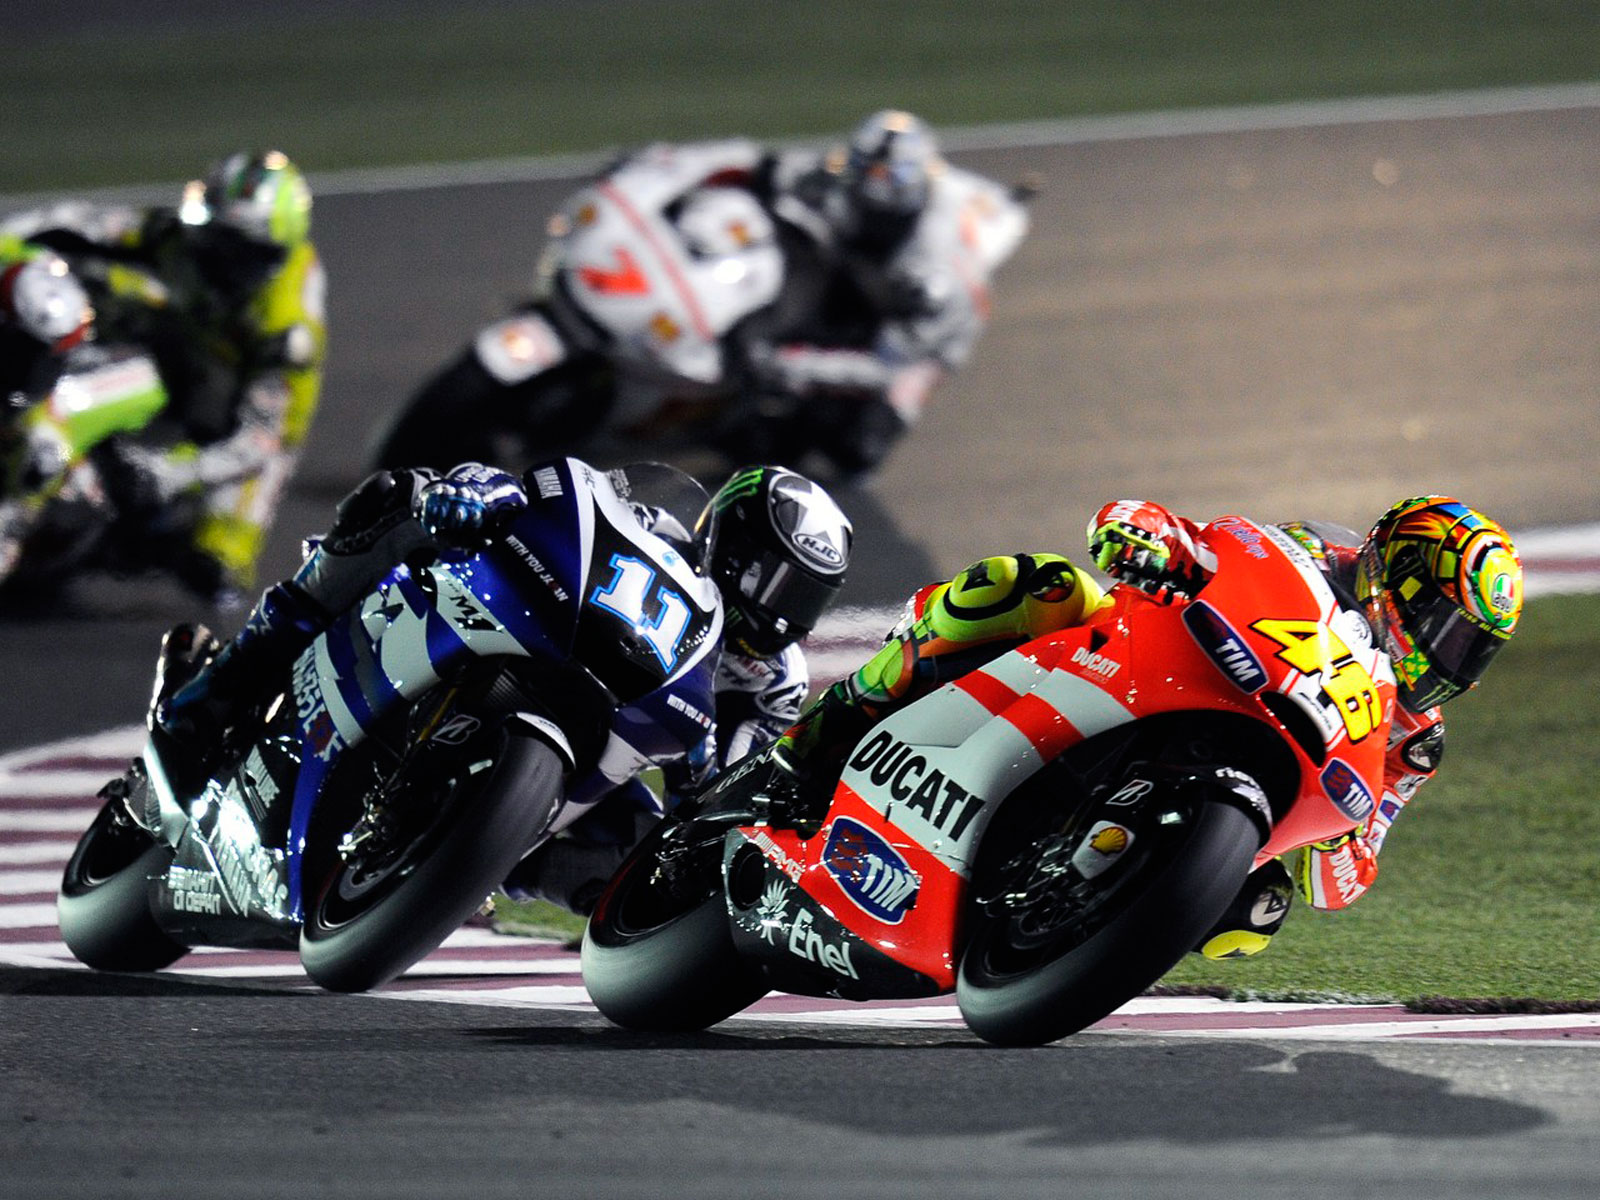 Motogp Wallpapers 2015 HD Wallpaper 2015 Wide Screen Wallpaper